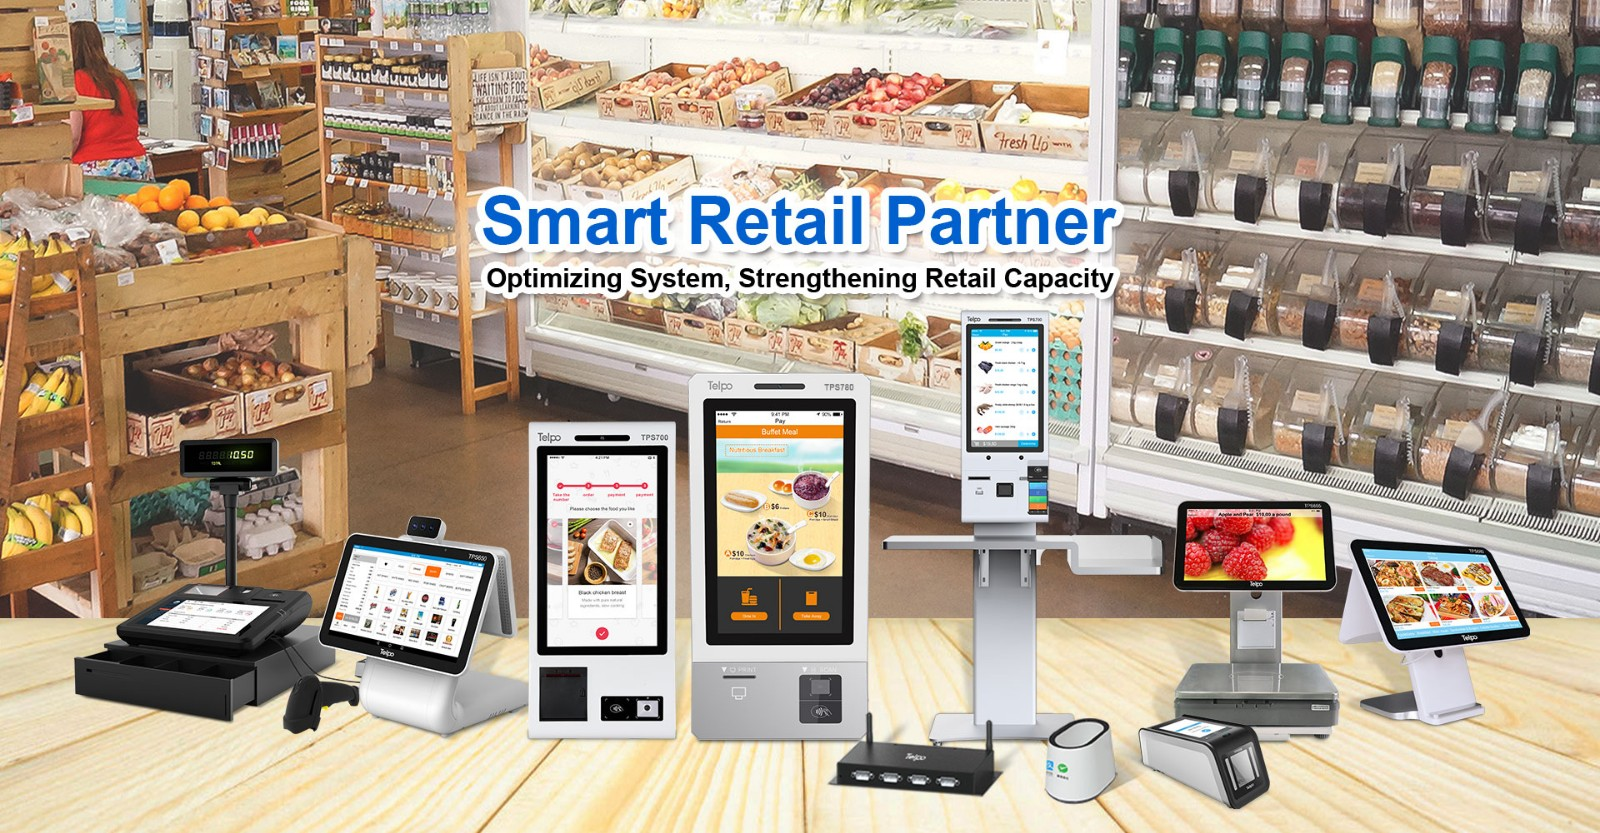 Telpo-TelpoAlipayBurger King |Jointly Create Self Service Smart Terminal For New Catering-5